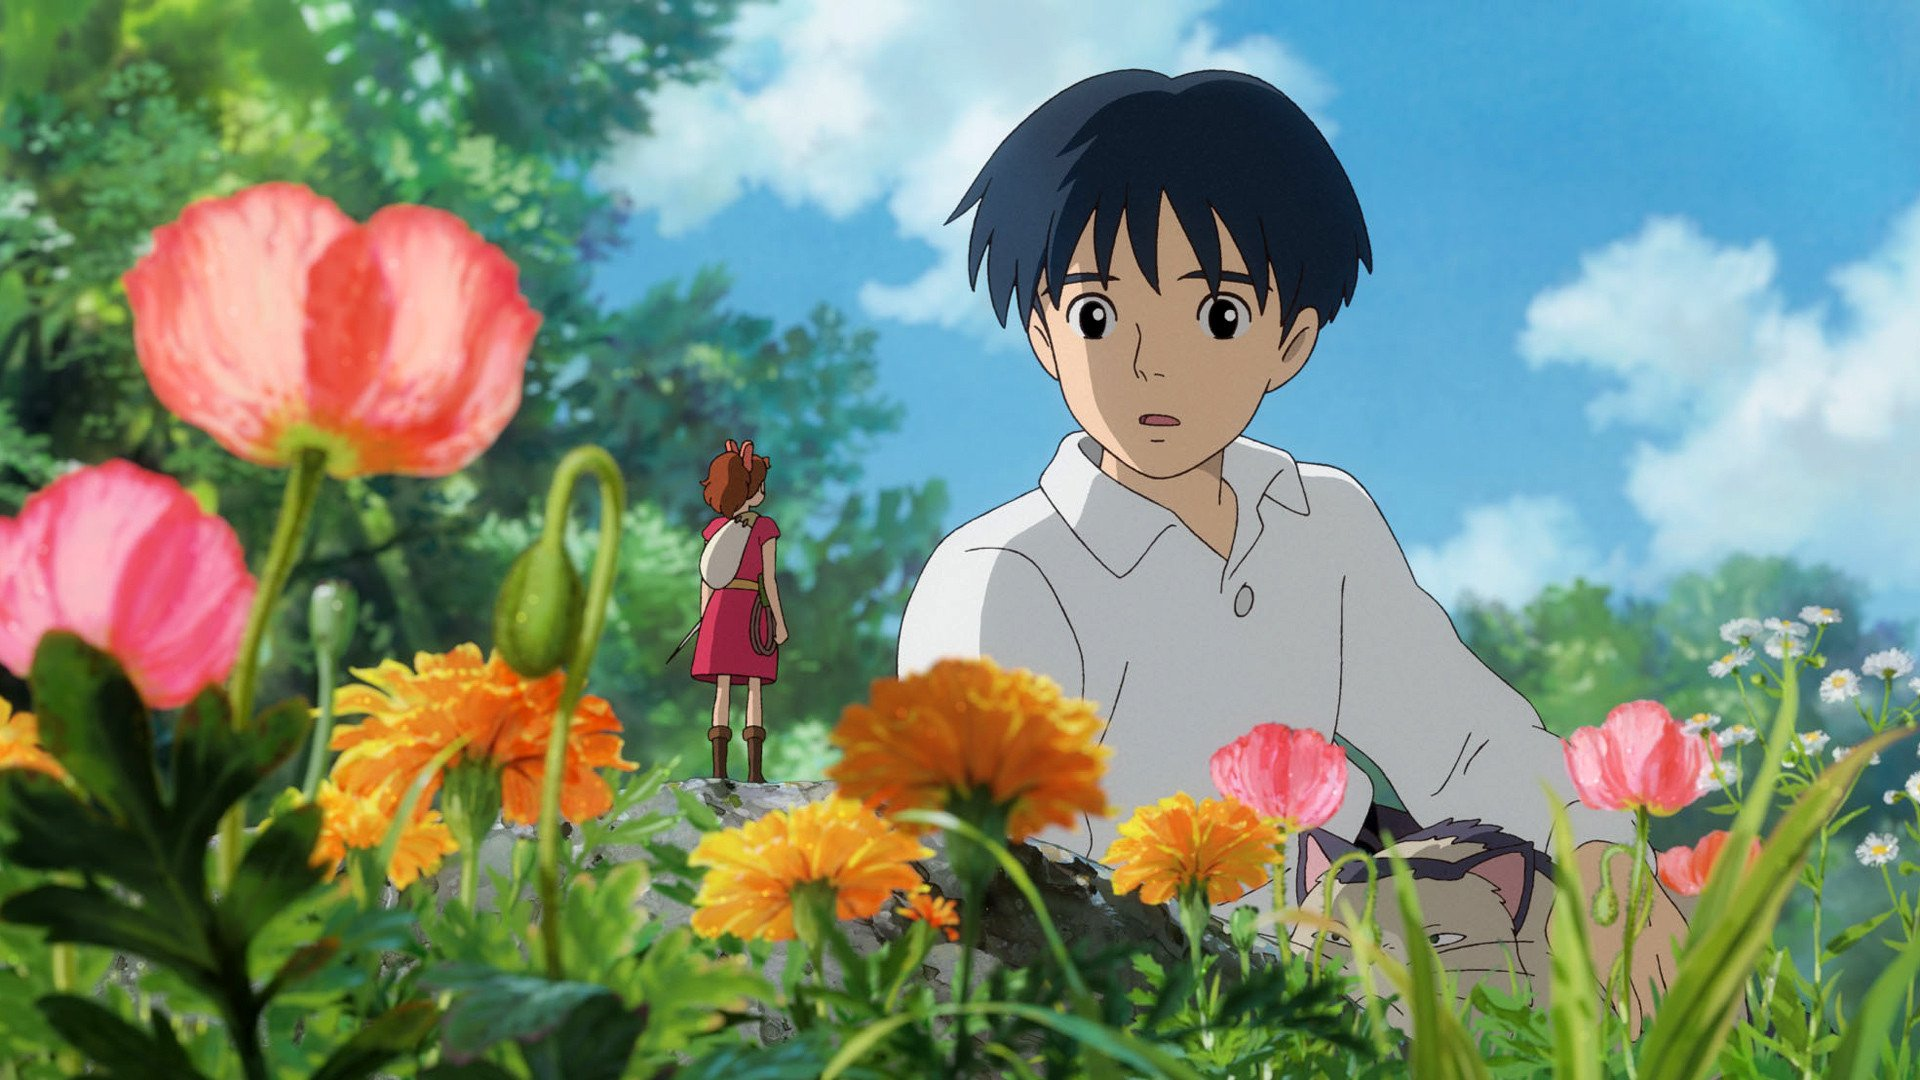 GHIBLI TO SEE DURING CONFINEMENT